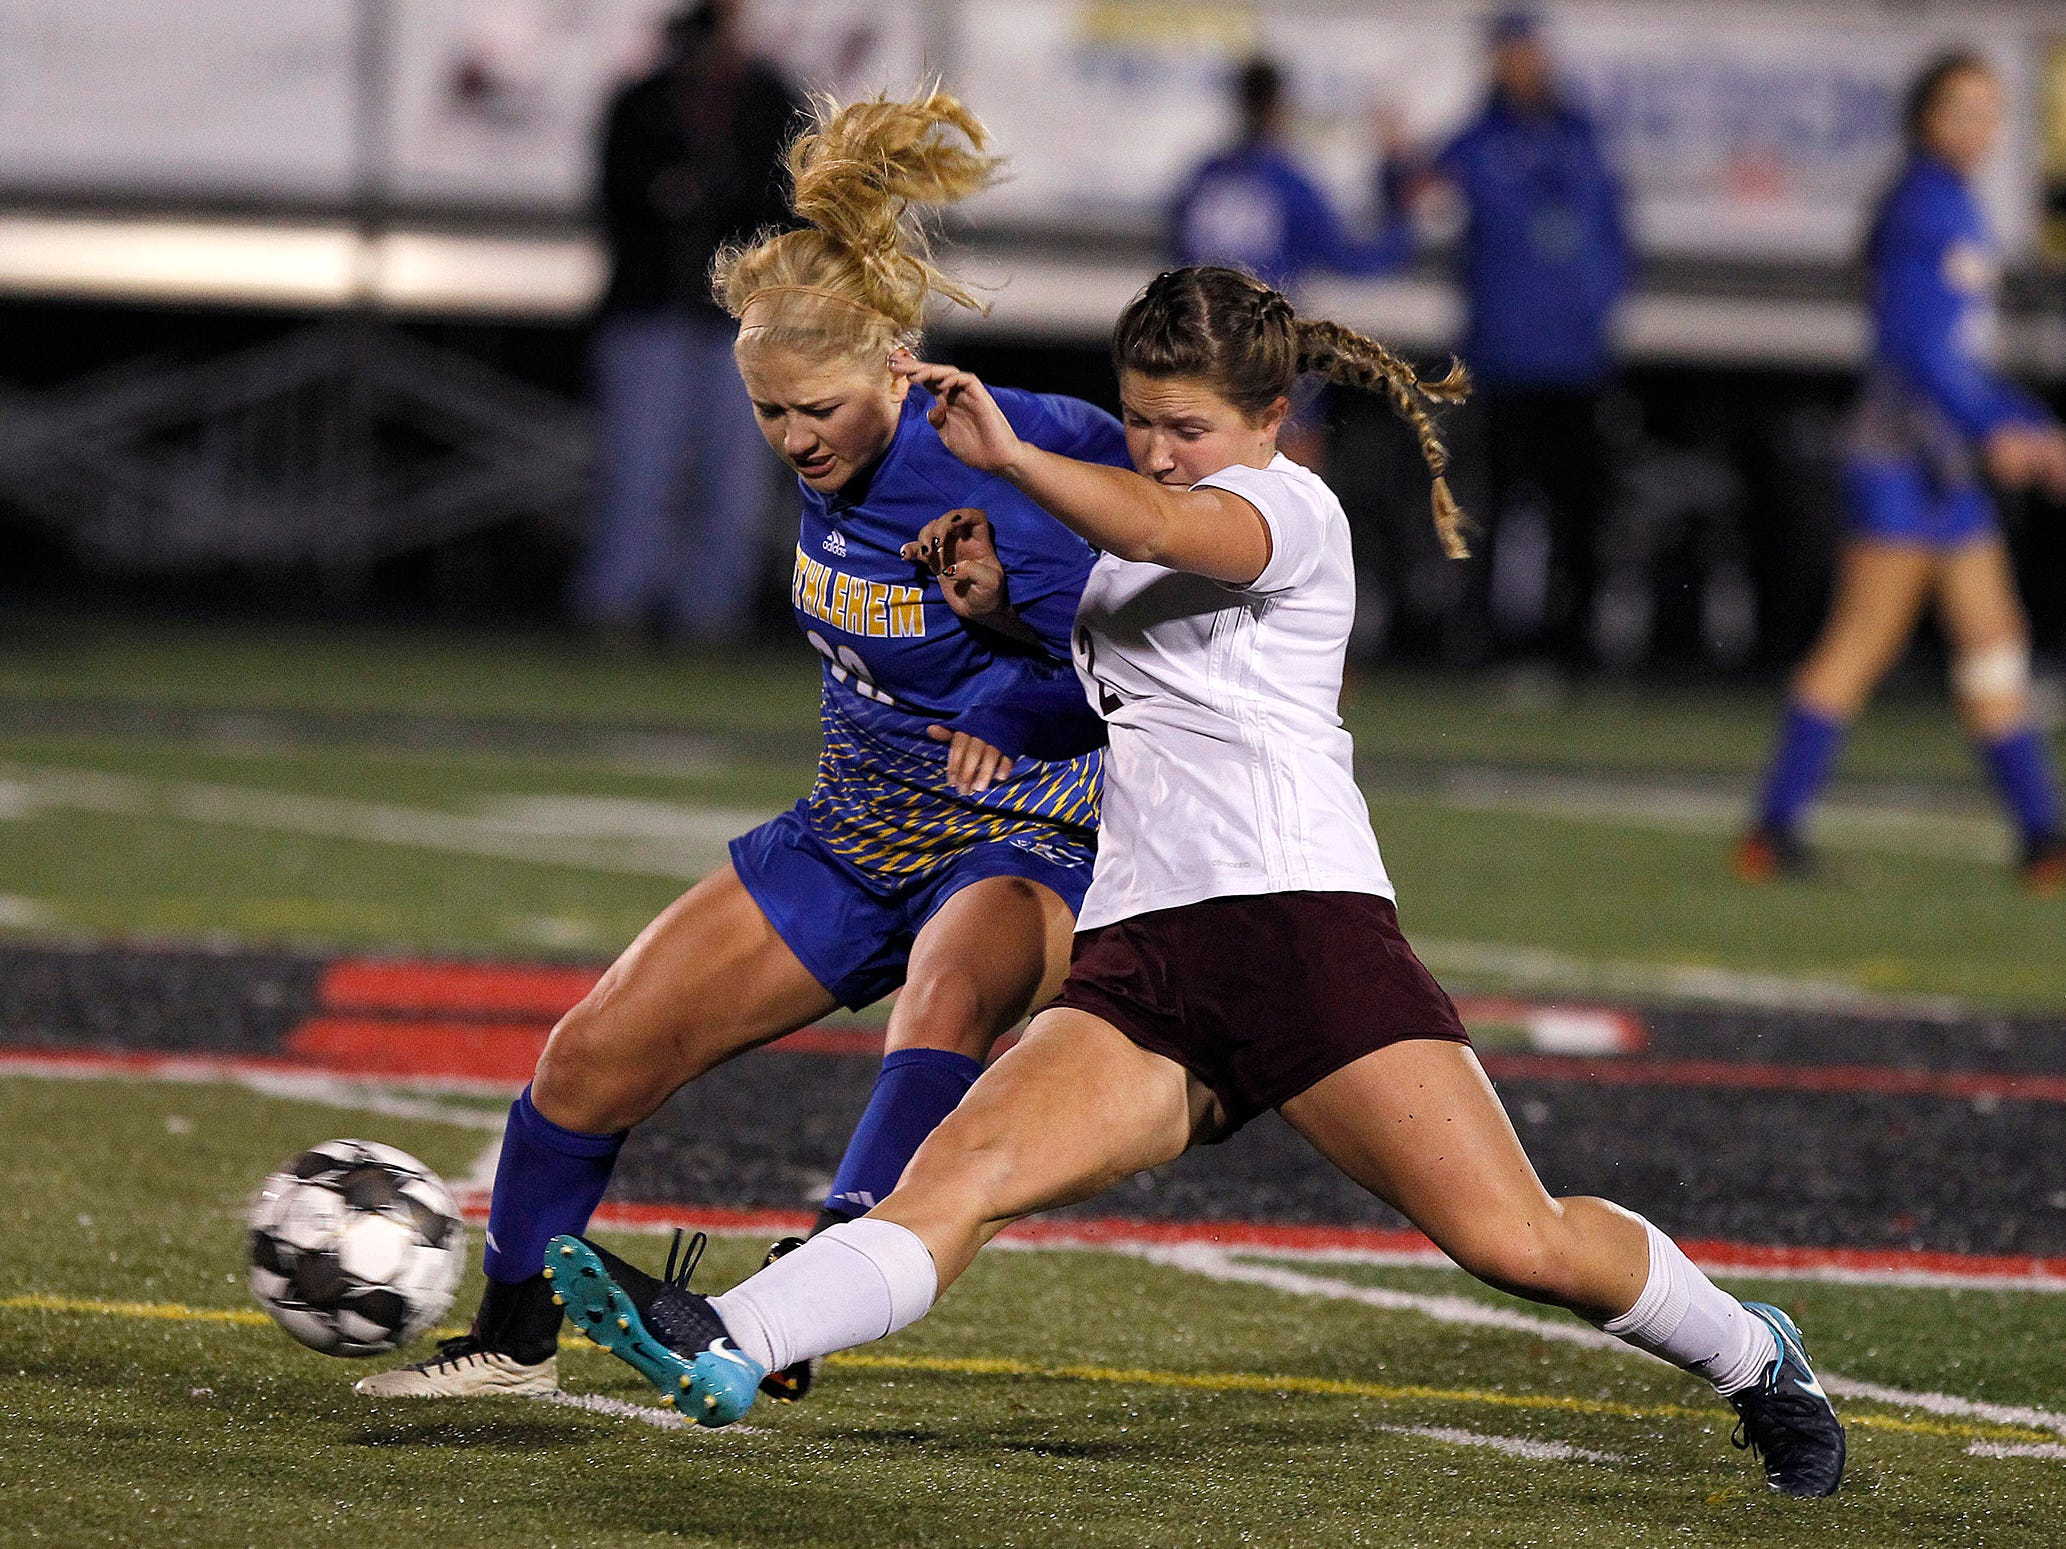 Henderson County's Maddie Tompkins defends against Bethlehem in the KHSAA state quarterfinals at Paul Laurence Dunbar in Lexington, Ky., Saturday night.